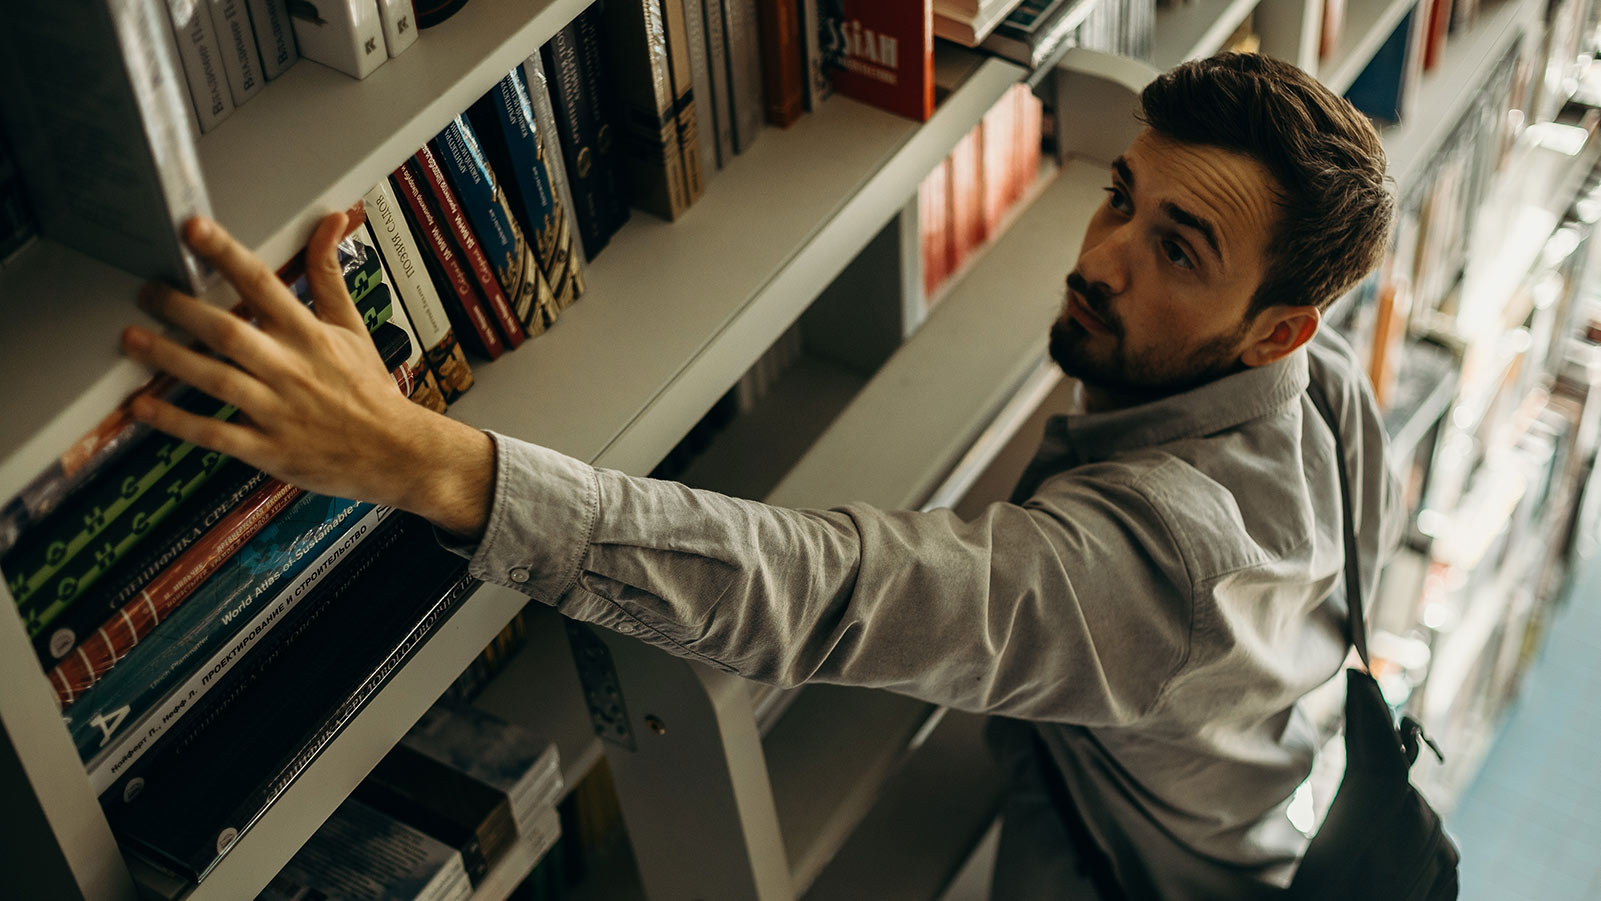 man reaching for a book